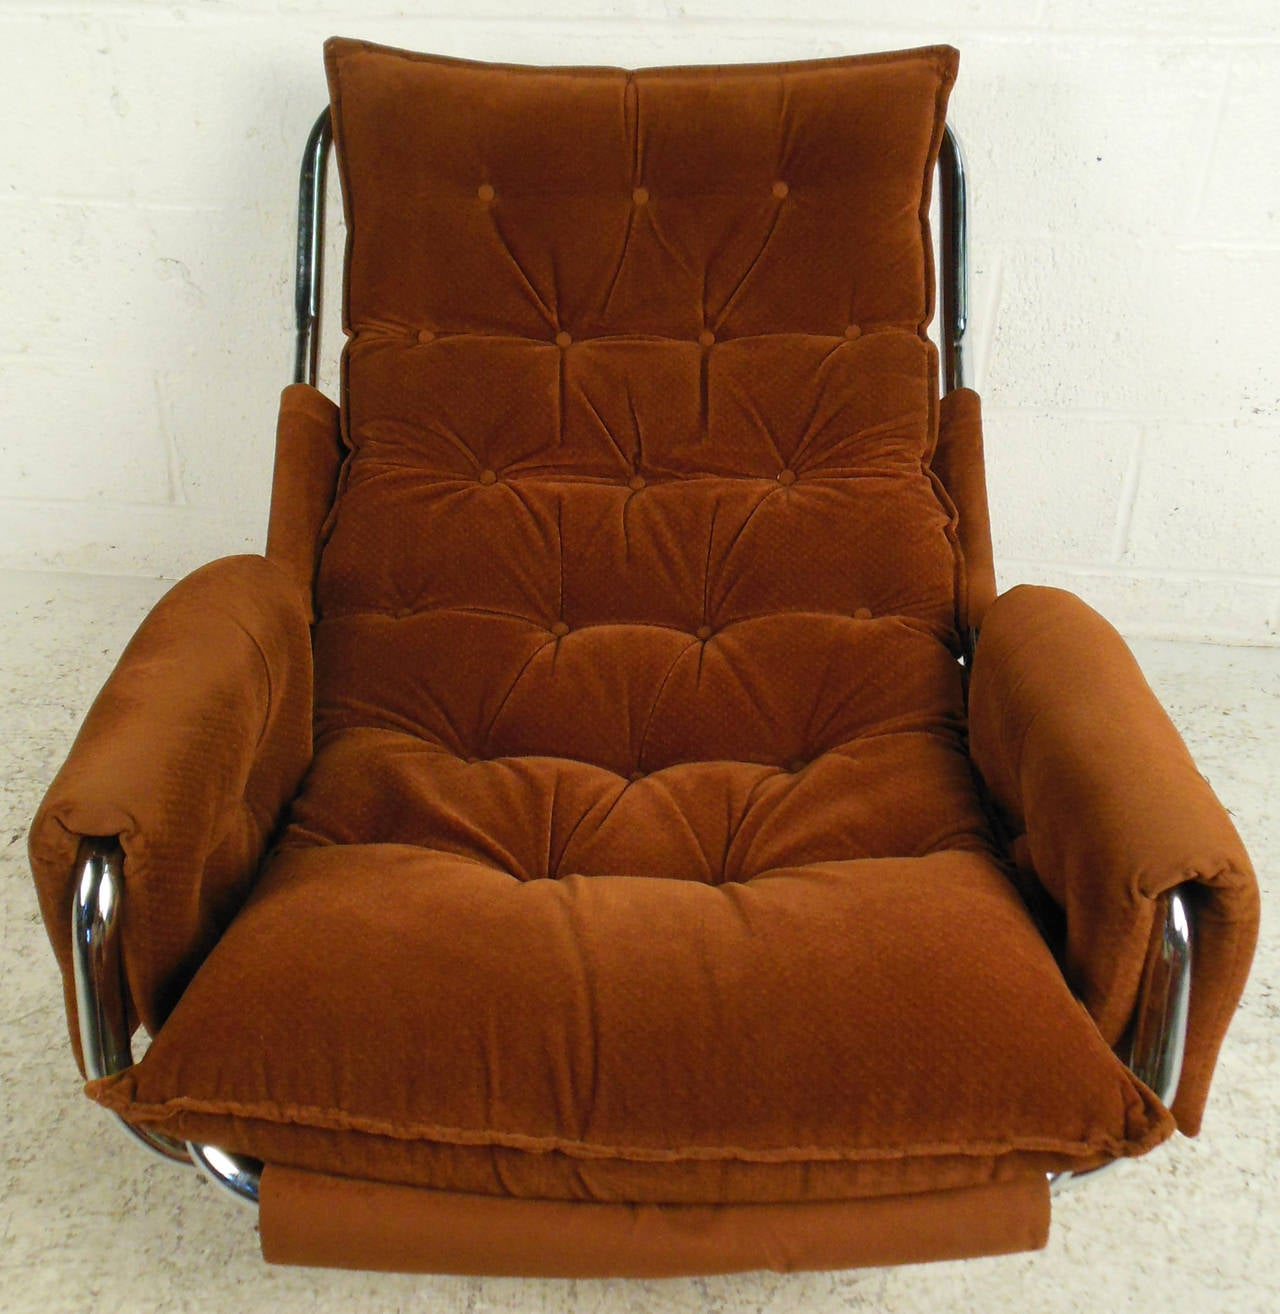 Vintage-modern lounge chair featuring sturdy tubular chrome base, comfortable tufted cushions and adjustable back. The retro style of this mid-century modern sling style chair makes a stylish addition to home or business seating arrangement.